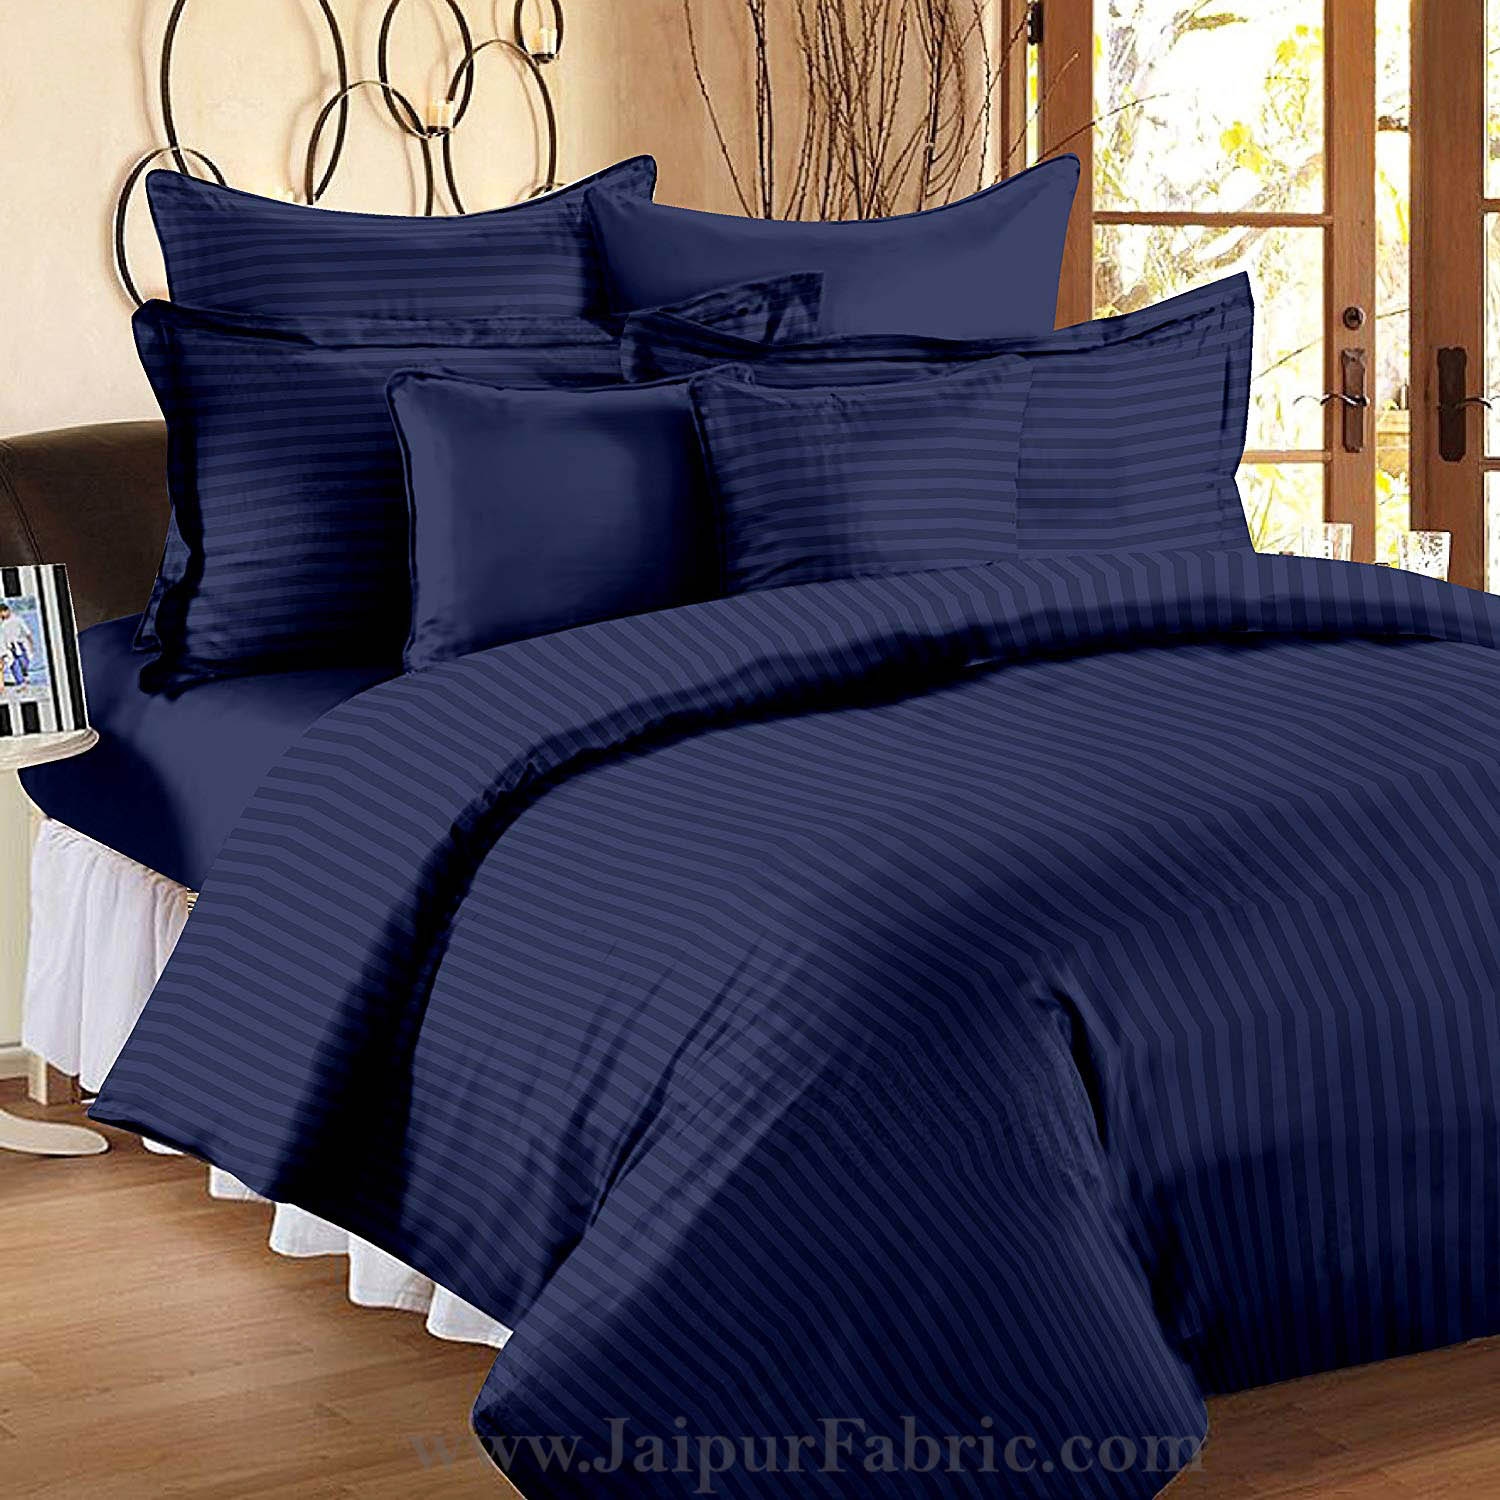 Navy Blue Self Design 300 TC King Size Pure Cotton Satin Slumber Sheet for Double Bed with 2 pillow covers